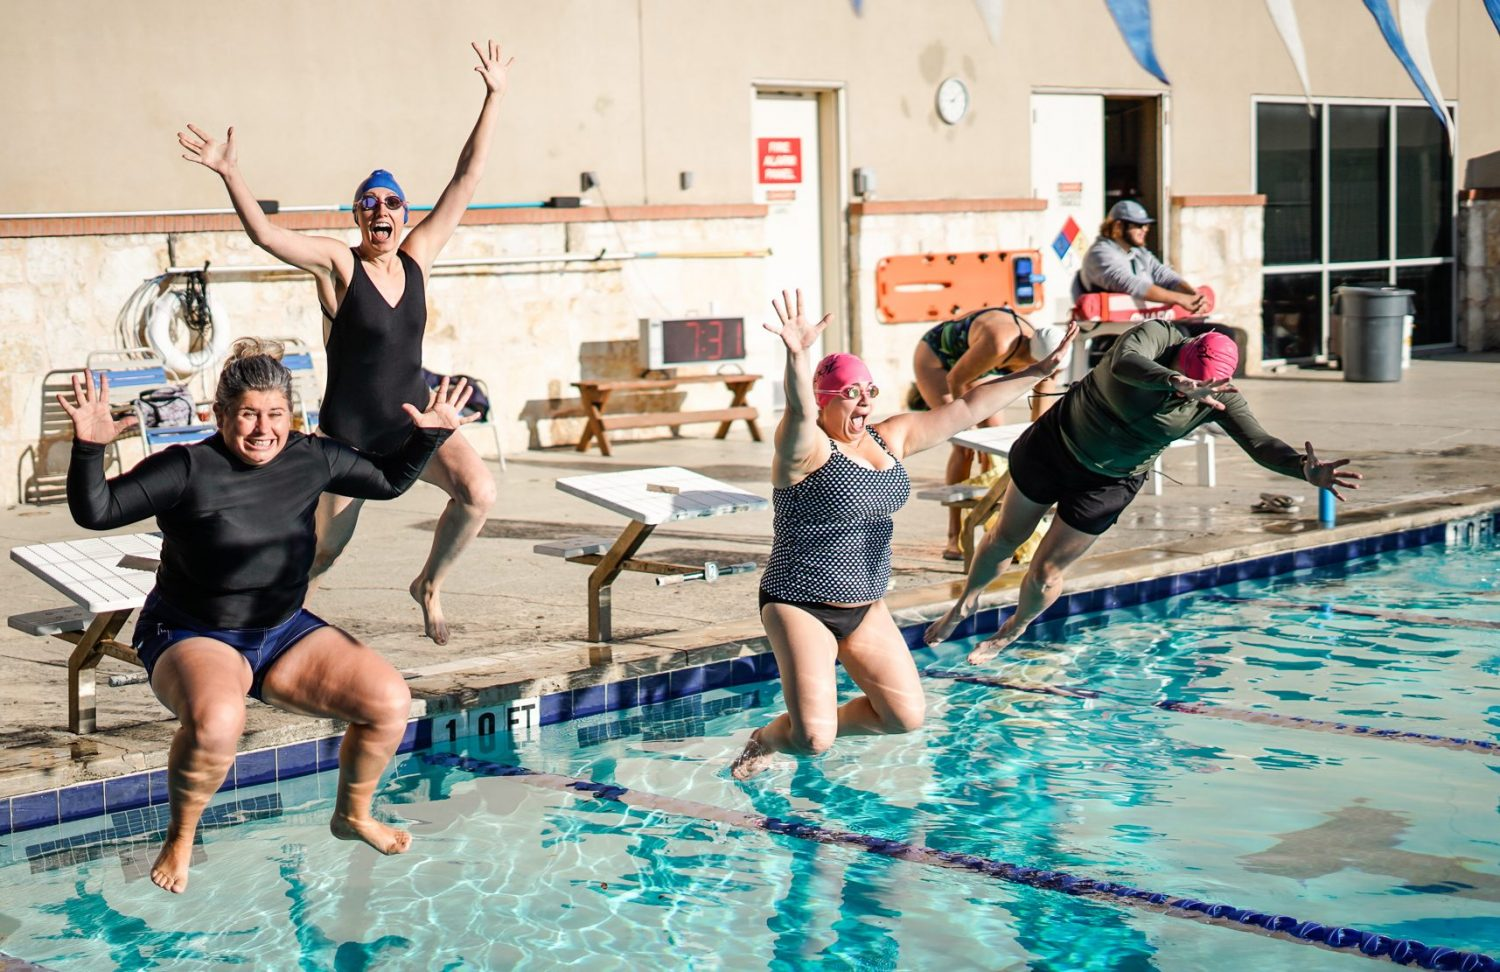 Women smiling and jumping into swimming pool